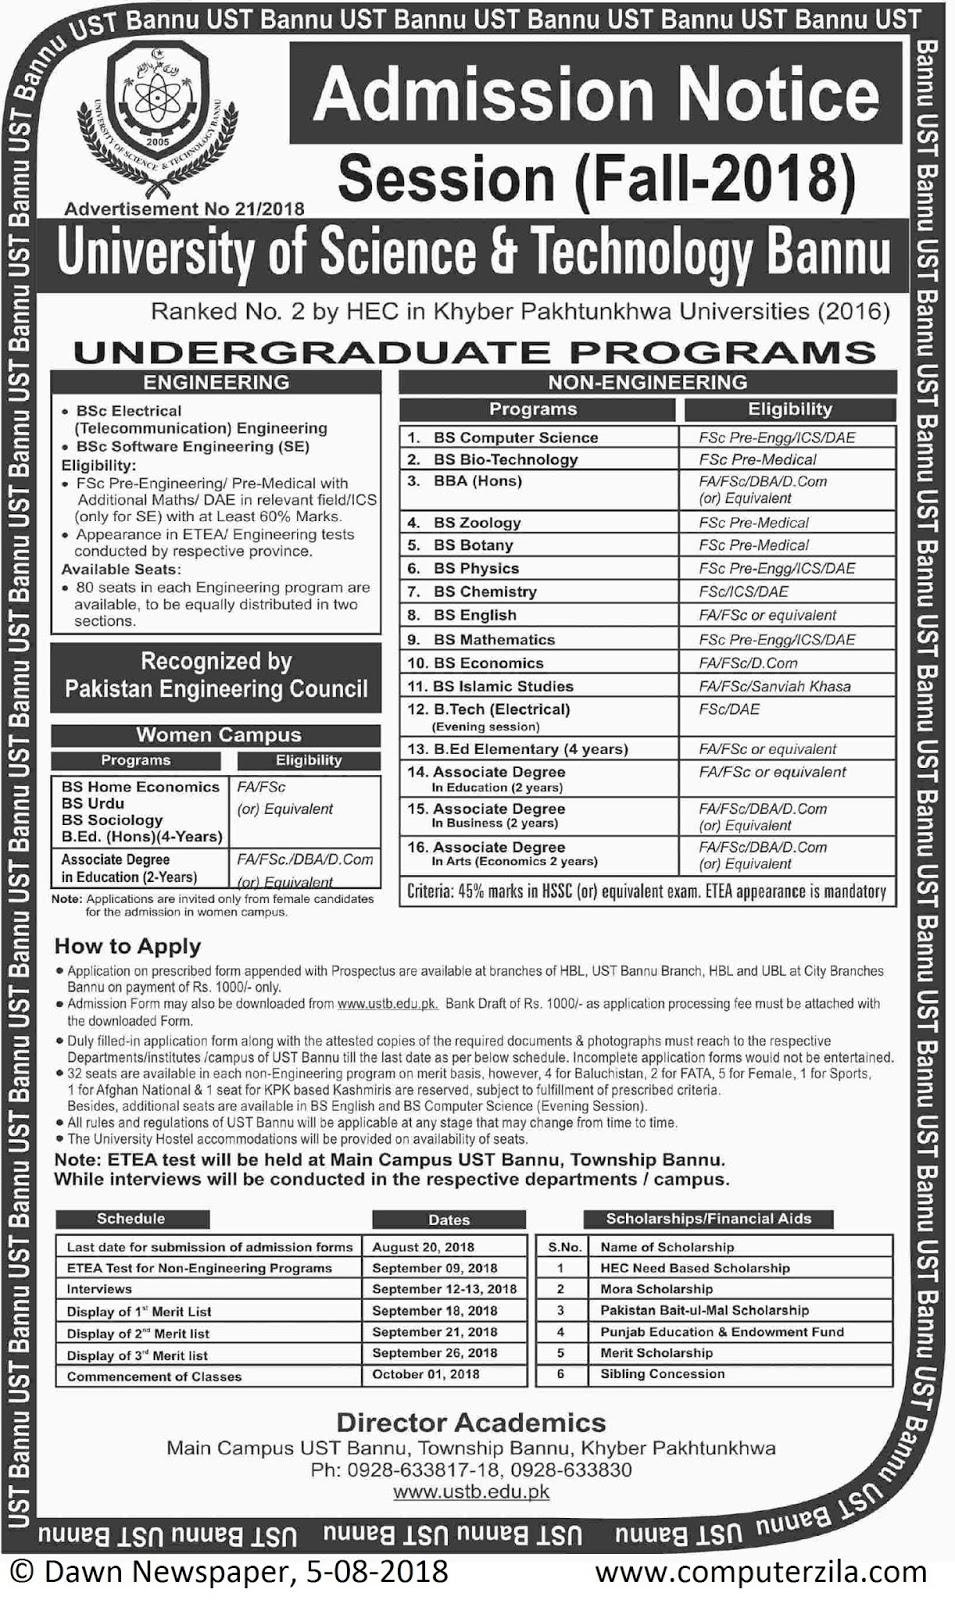 Admissions Open For Fall 2018 At USTB Bannu Campus